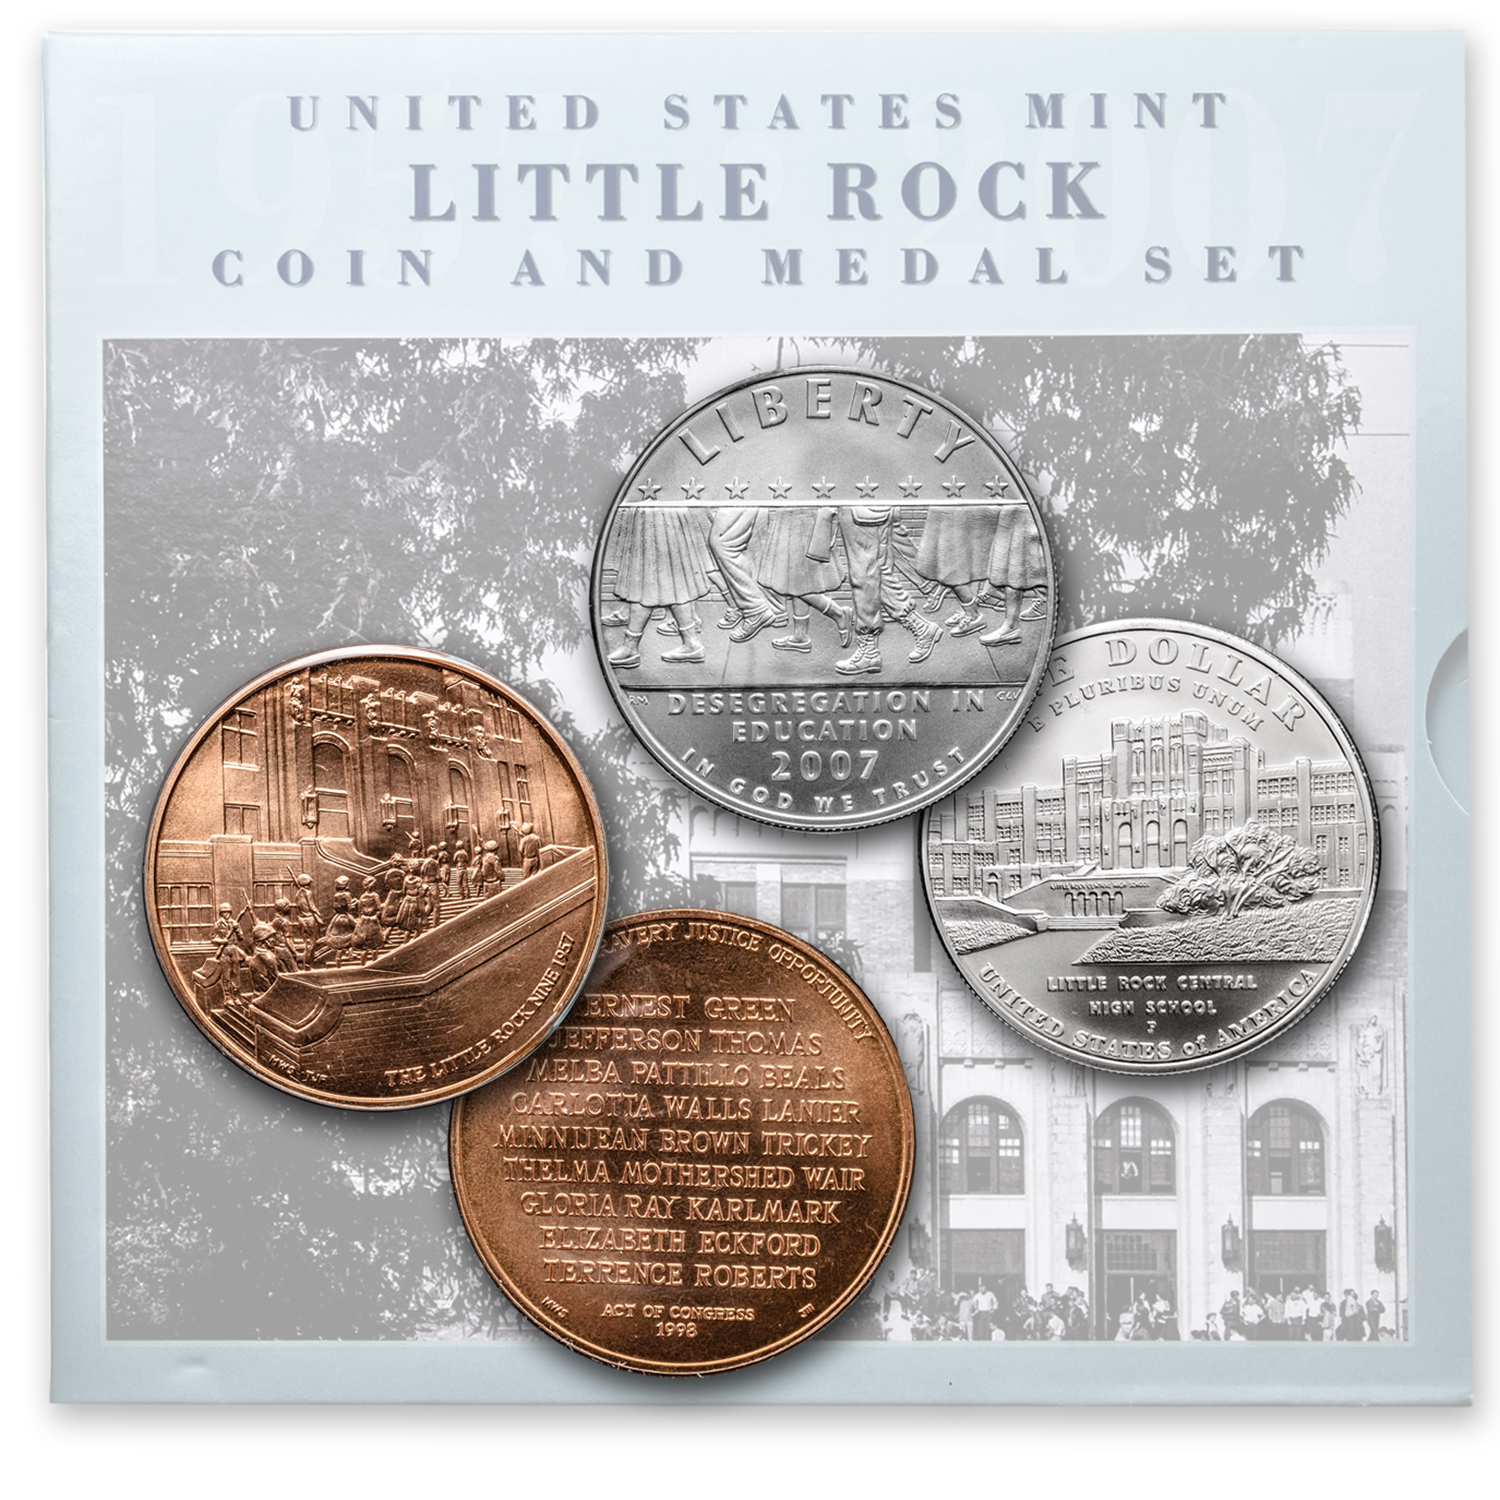 2007 Little Rock Desegregation Coin & Medal Set